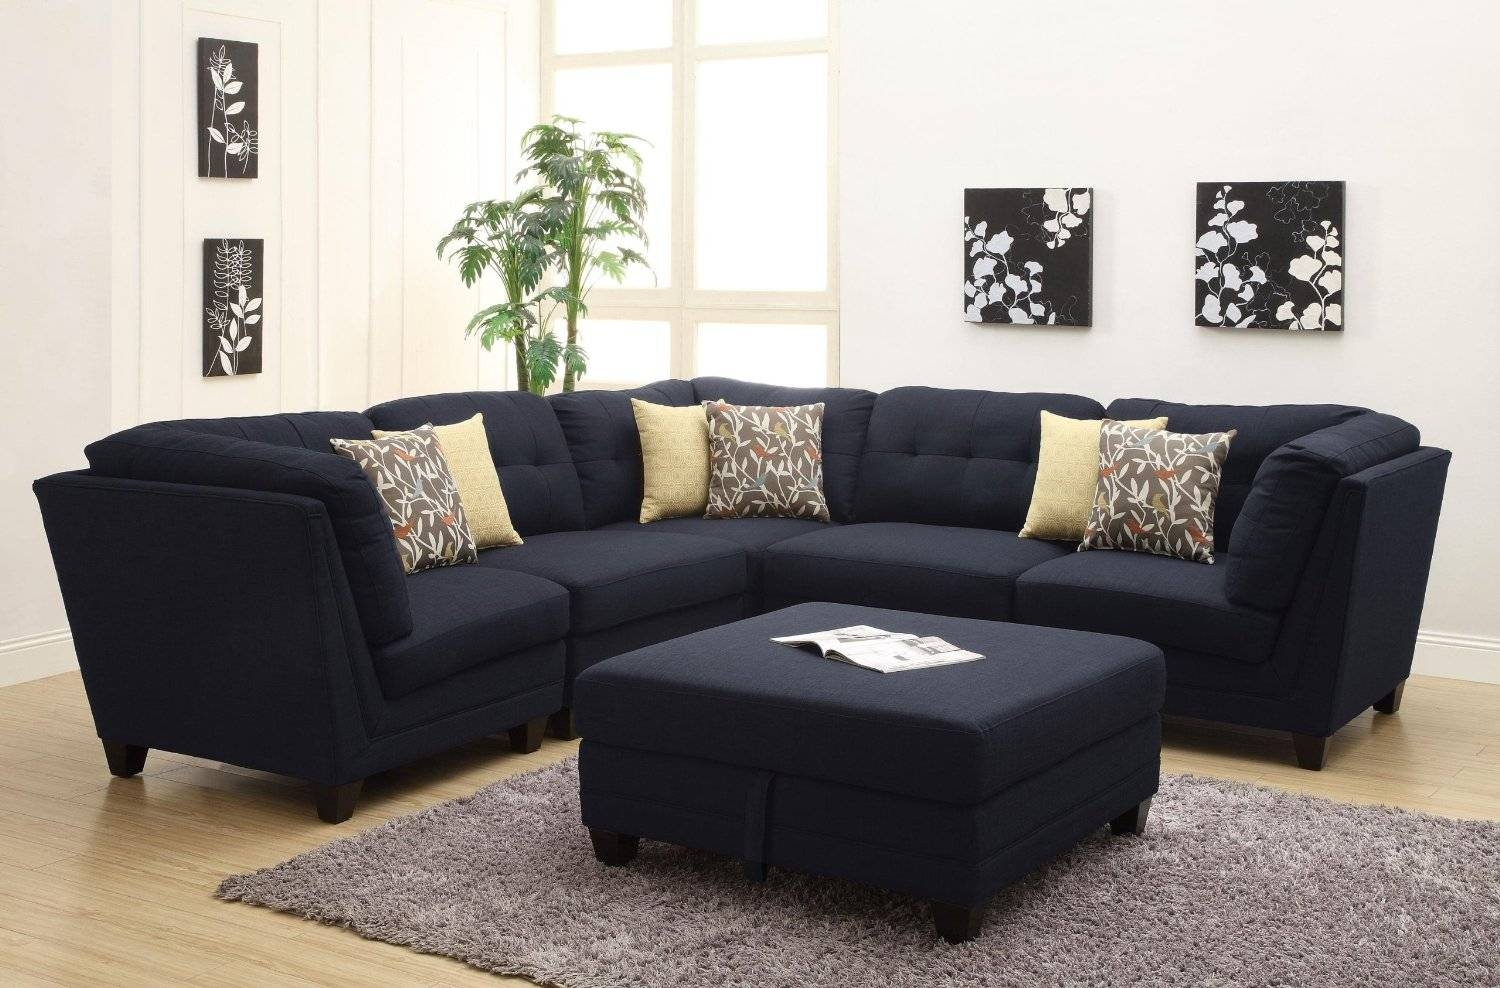 Mostfortable Sectional Sofas Numbered In The Couch Group  Tikspor  Inside Largefortable Sectional Sofas